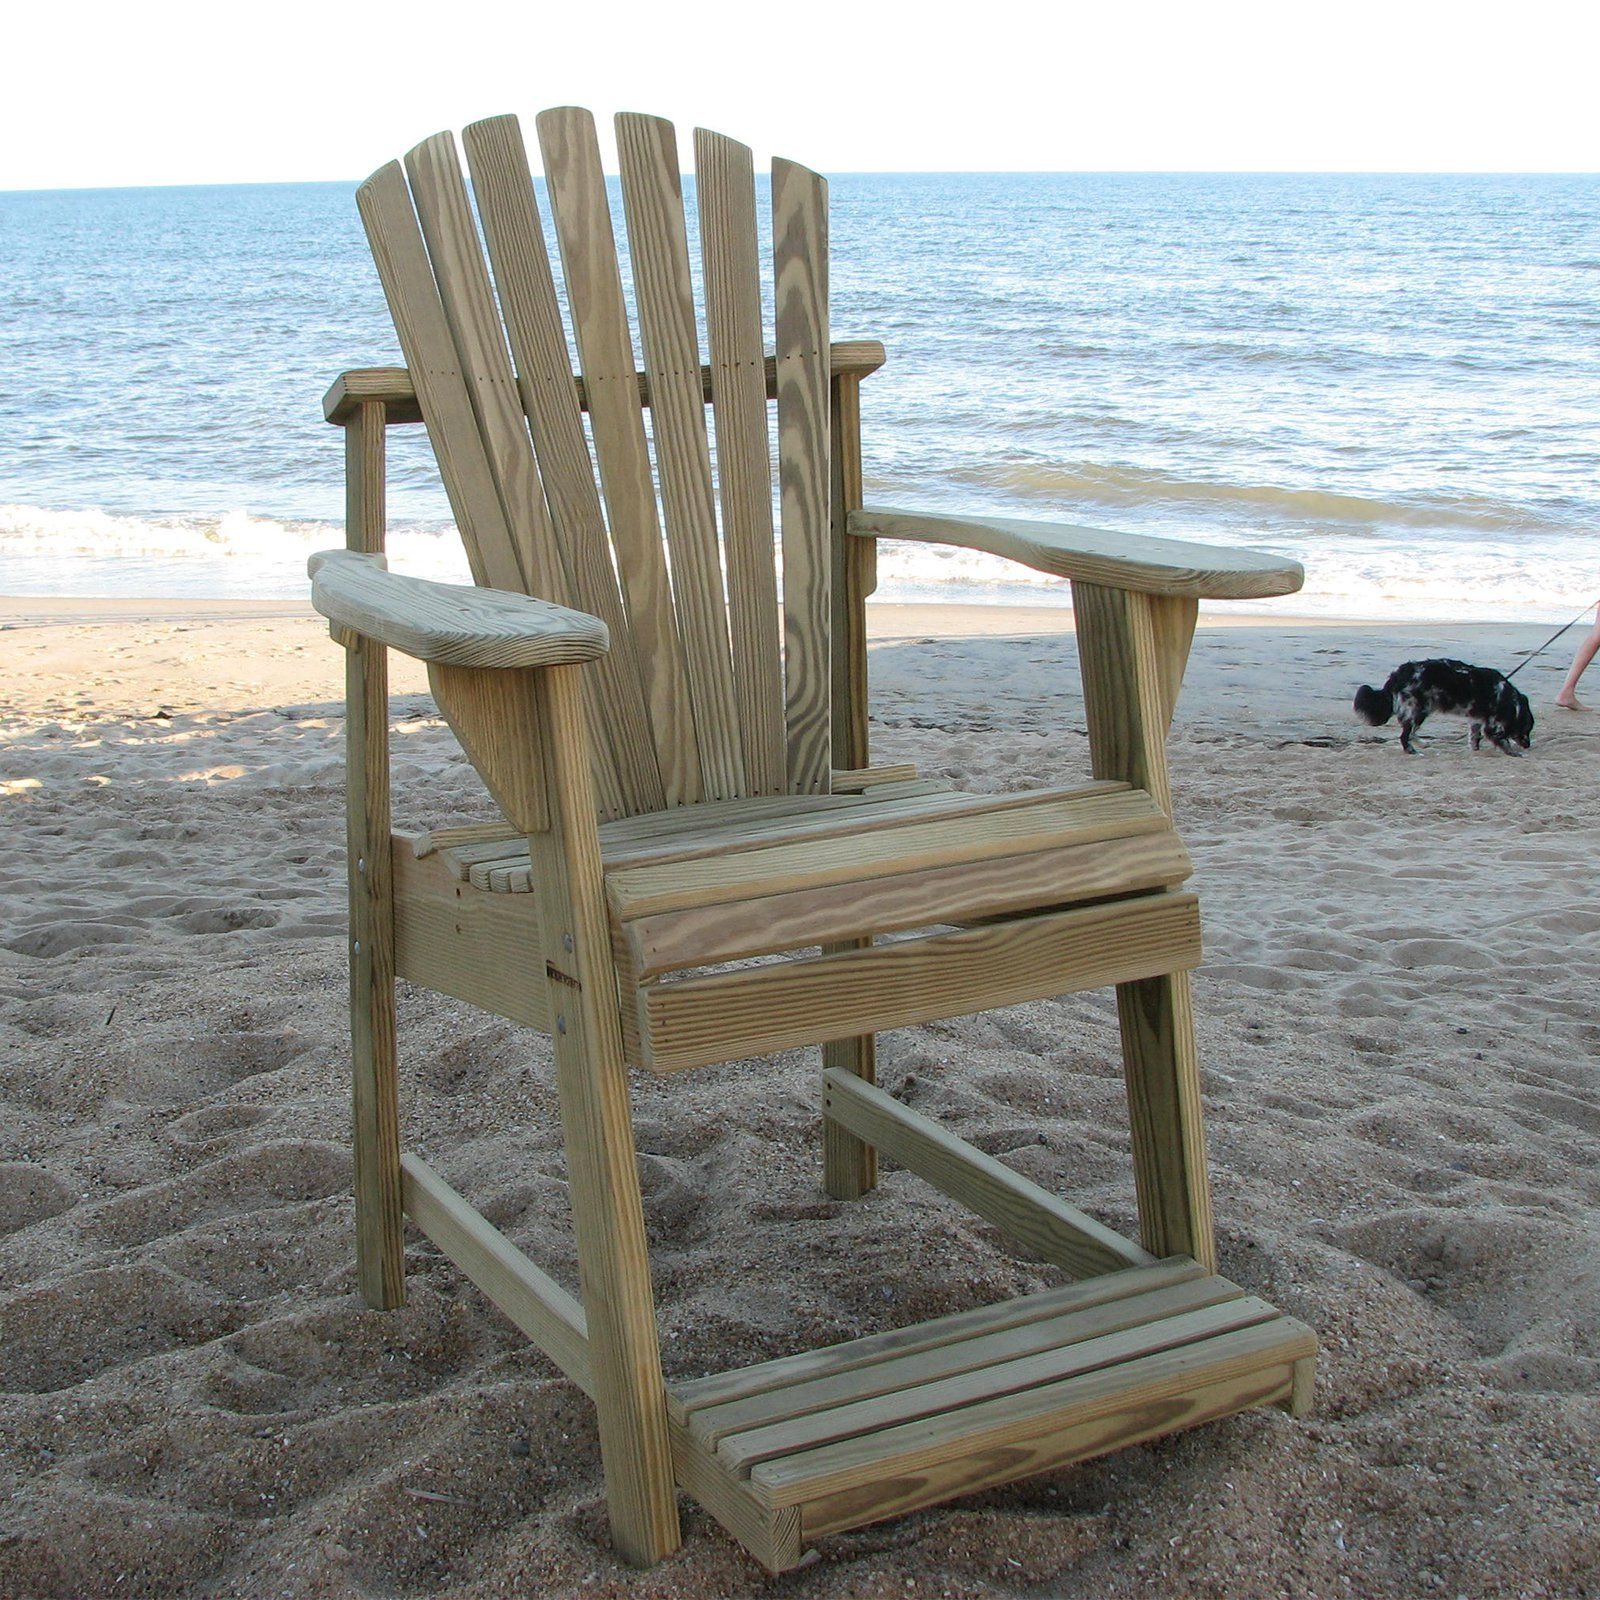 High Quality Outdoor Weathercraft Designers Choice Treated Balcony Adirondack Chair With  Footrest   Natural   401 500. FootrestUnfinished WoodAdirondack ...